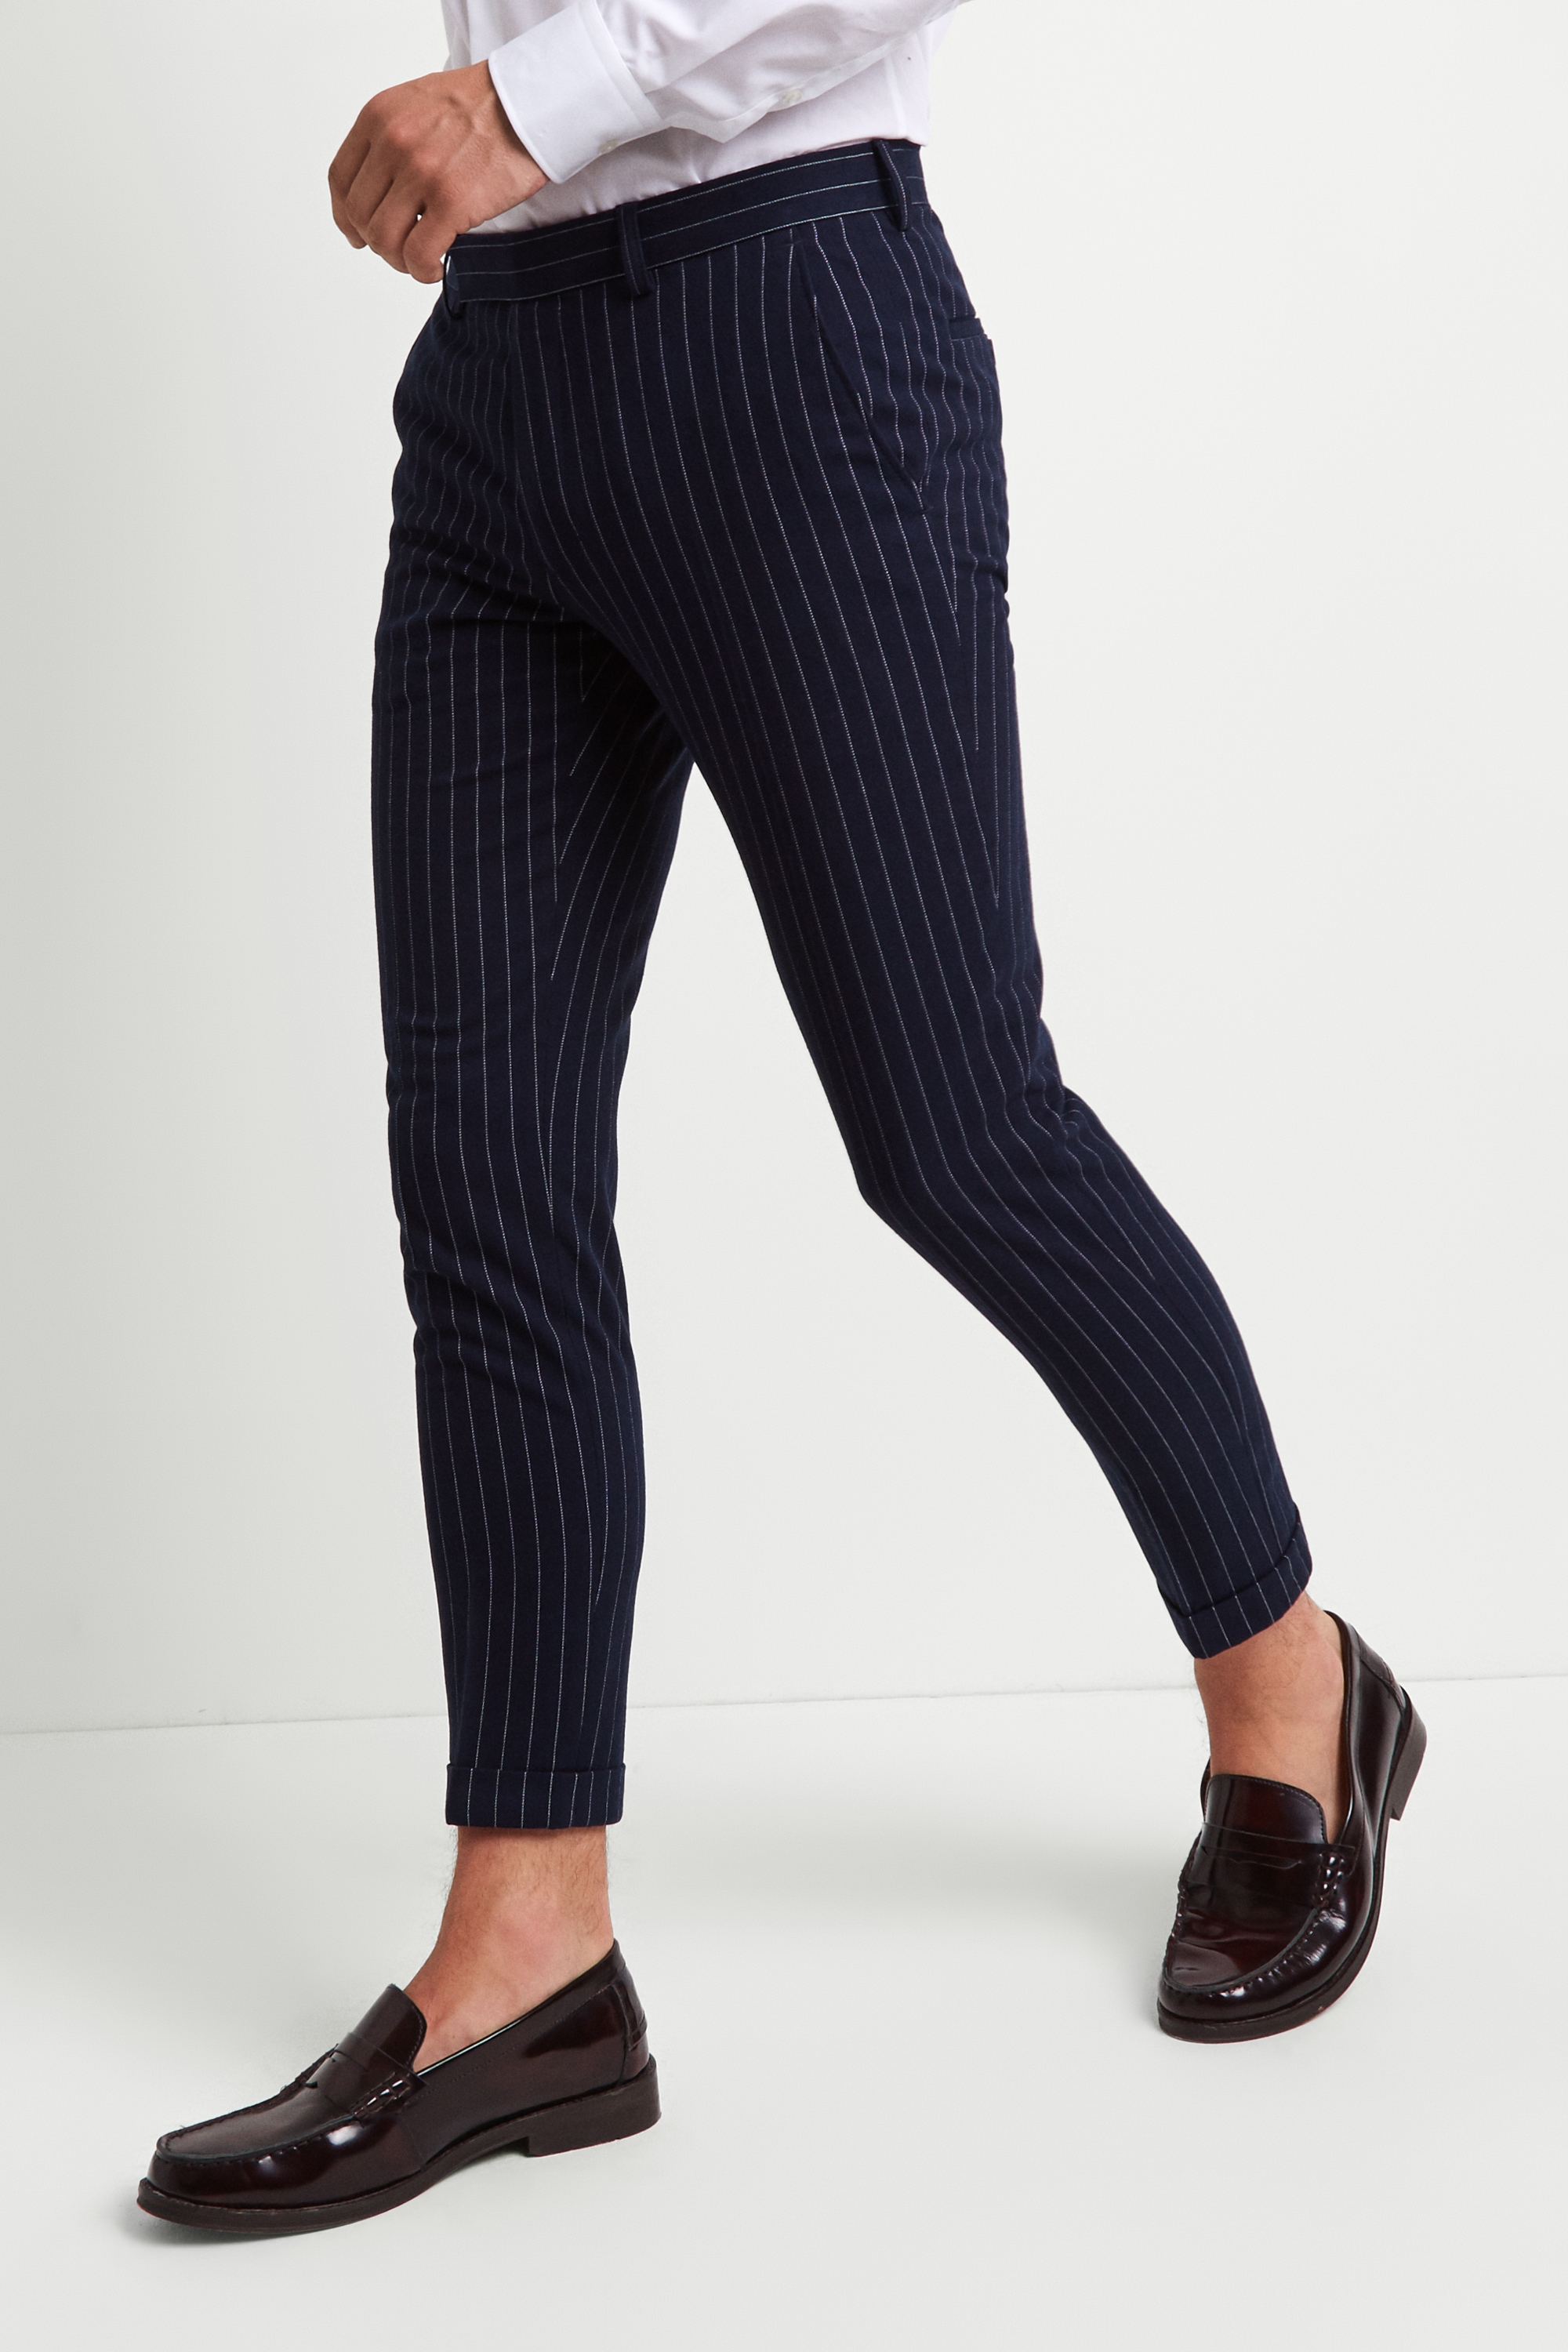 Moss London Mens Trousers Skinny Fit Navy Chalk Stripe Cropped Pants